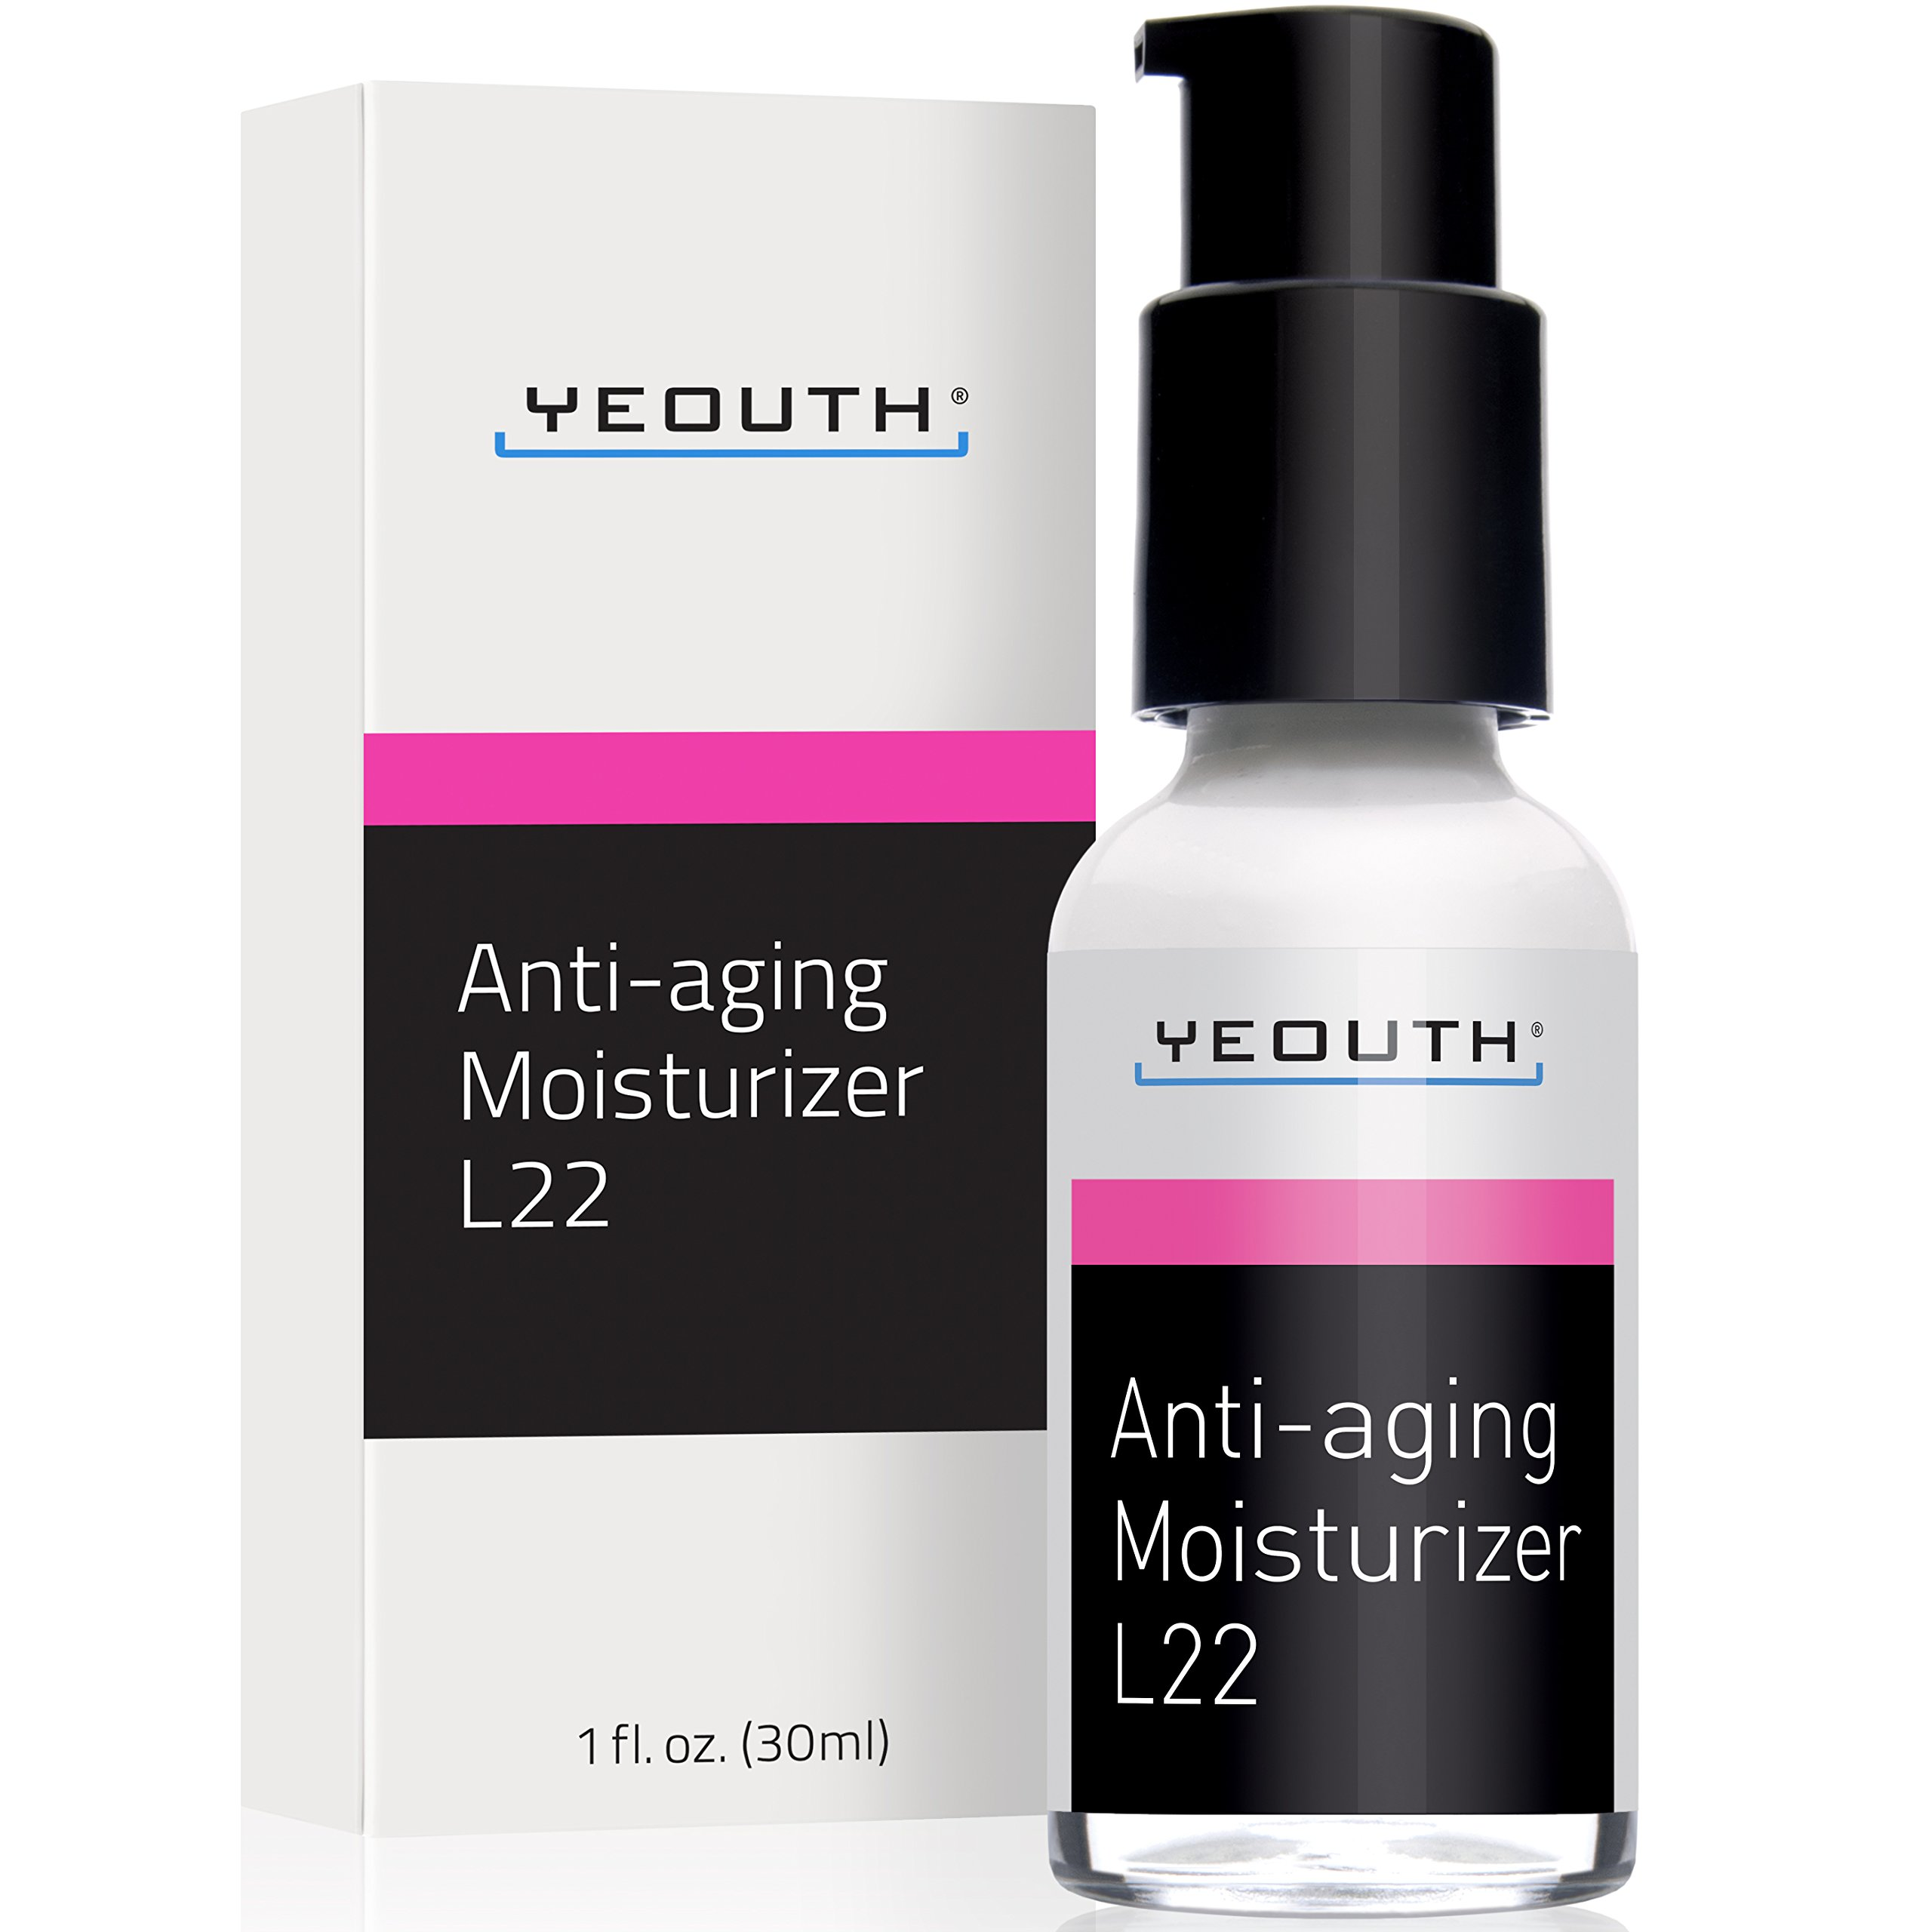 Best Anti Aging Moisturizer Face Cream, Shea Butter, Jojoba & Macadamia Seed Oil, and Patented L22 Complex From YEOUTH, Hydrates, Firms, Erases Wrinkles and Evens Skin Tone - Day and Night Cream